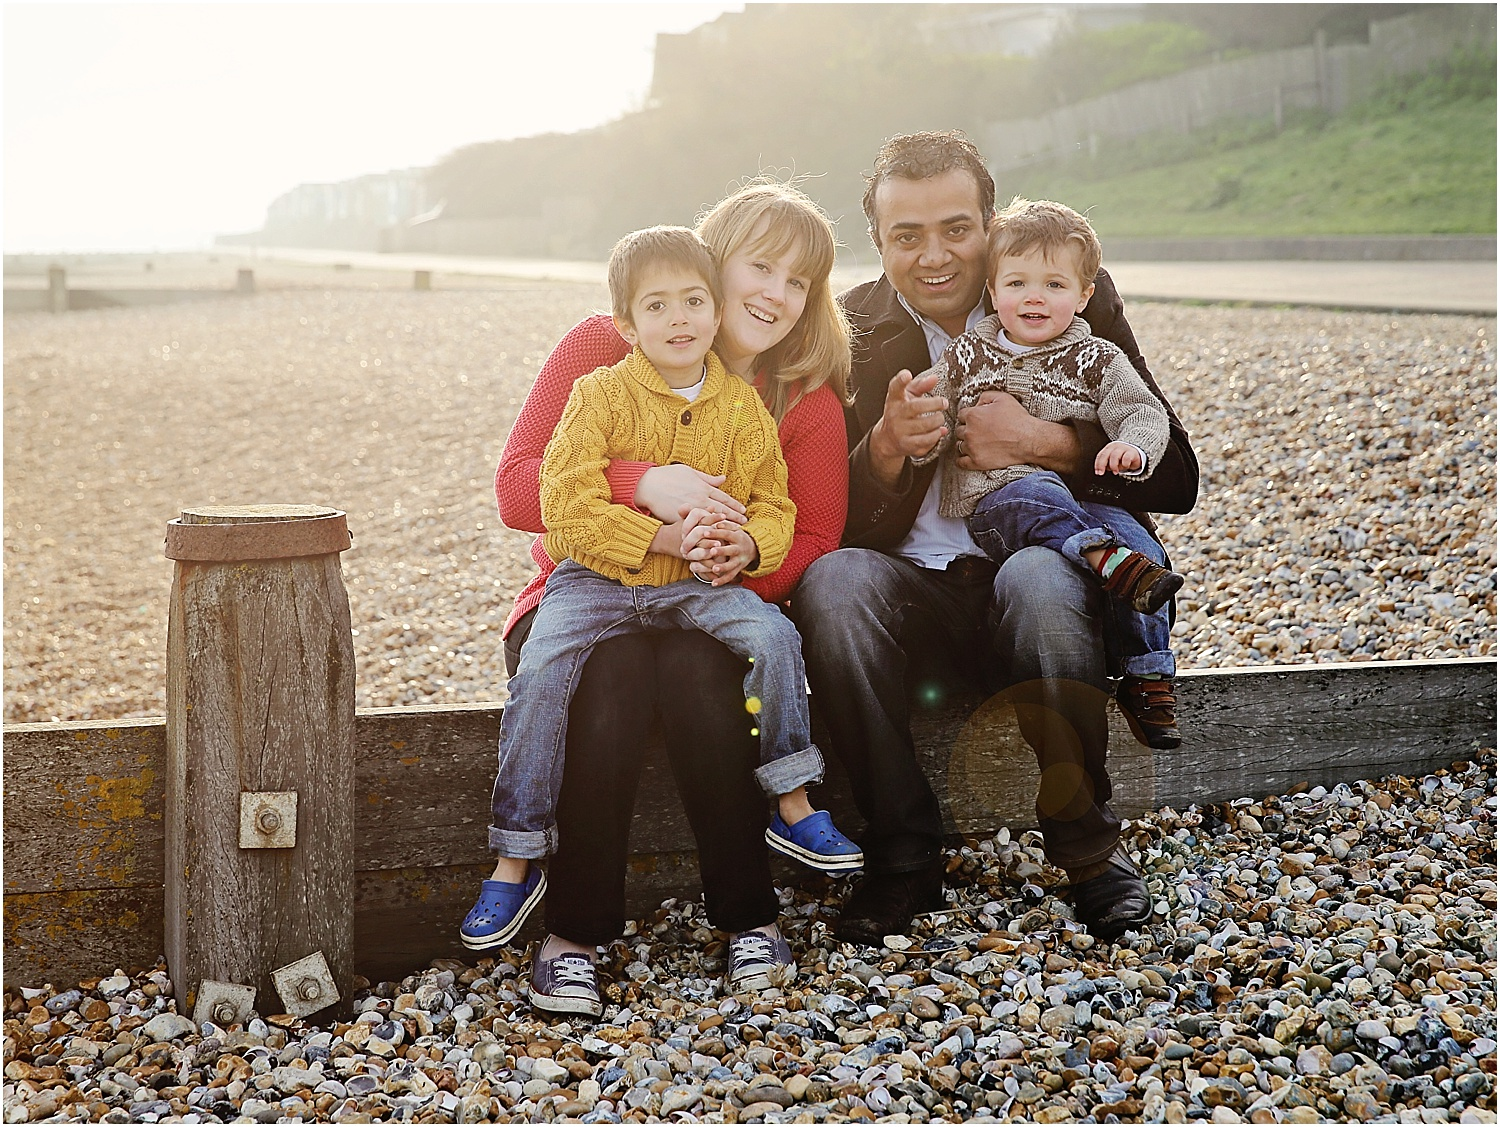 Whitstable beach photography family child portrait beach group